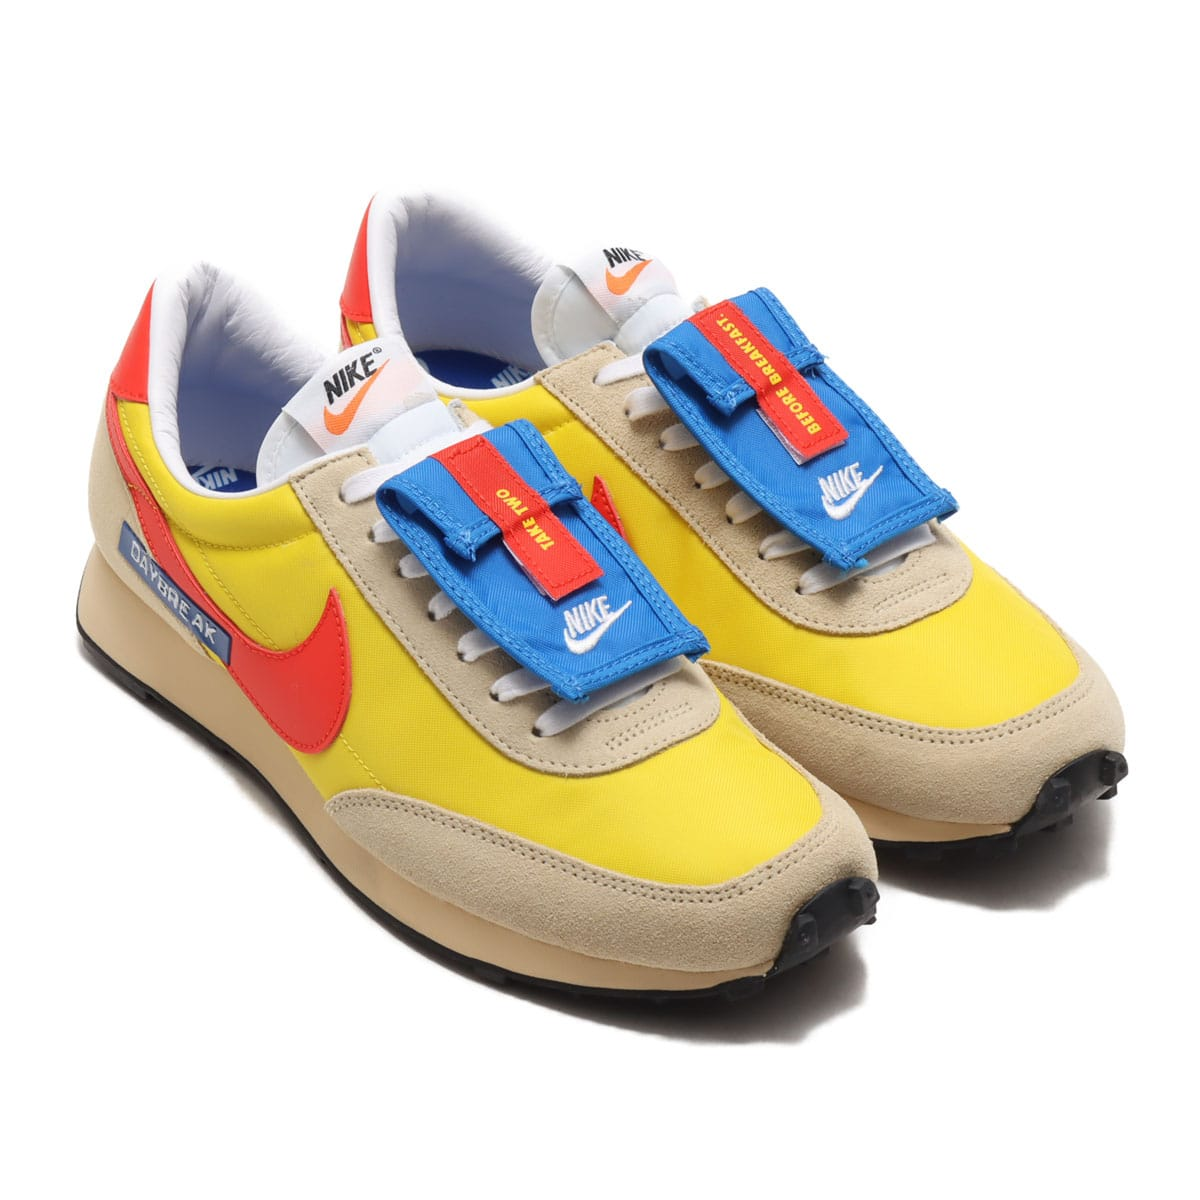 NIKE W DBREAK SPEED YELLOW/HABANERO RED-TEAM GOLD 20HO-I_photo_large